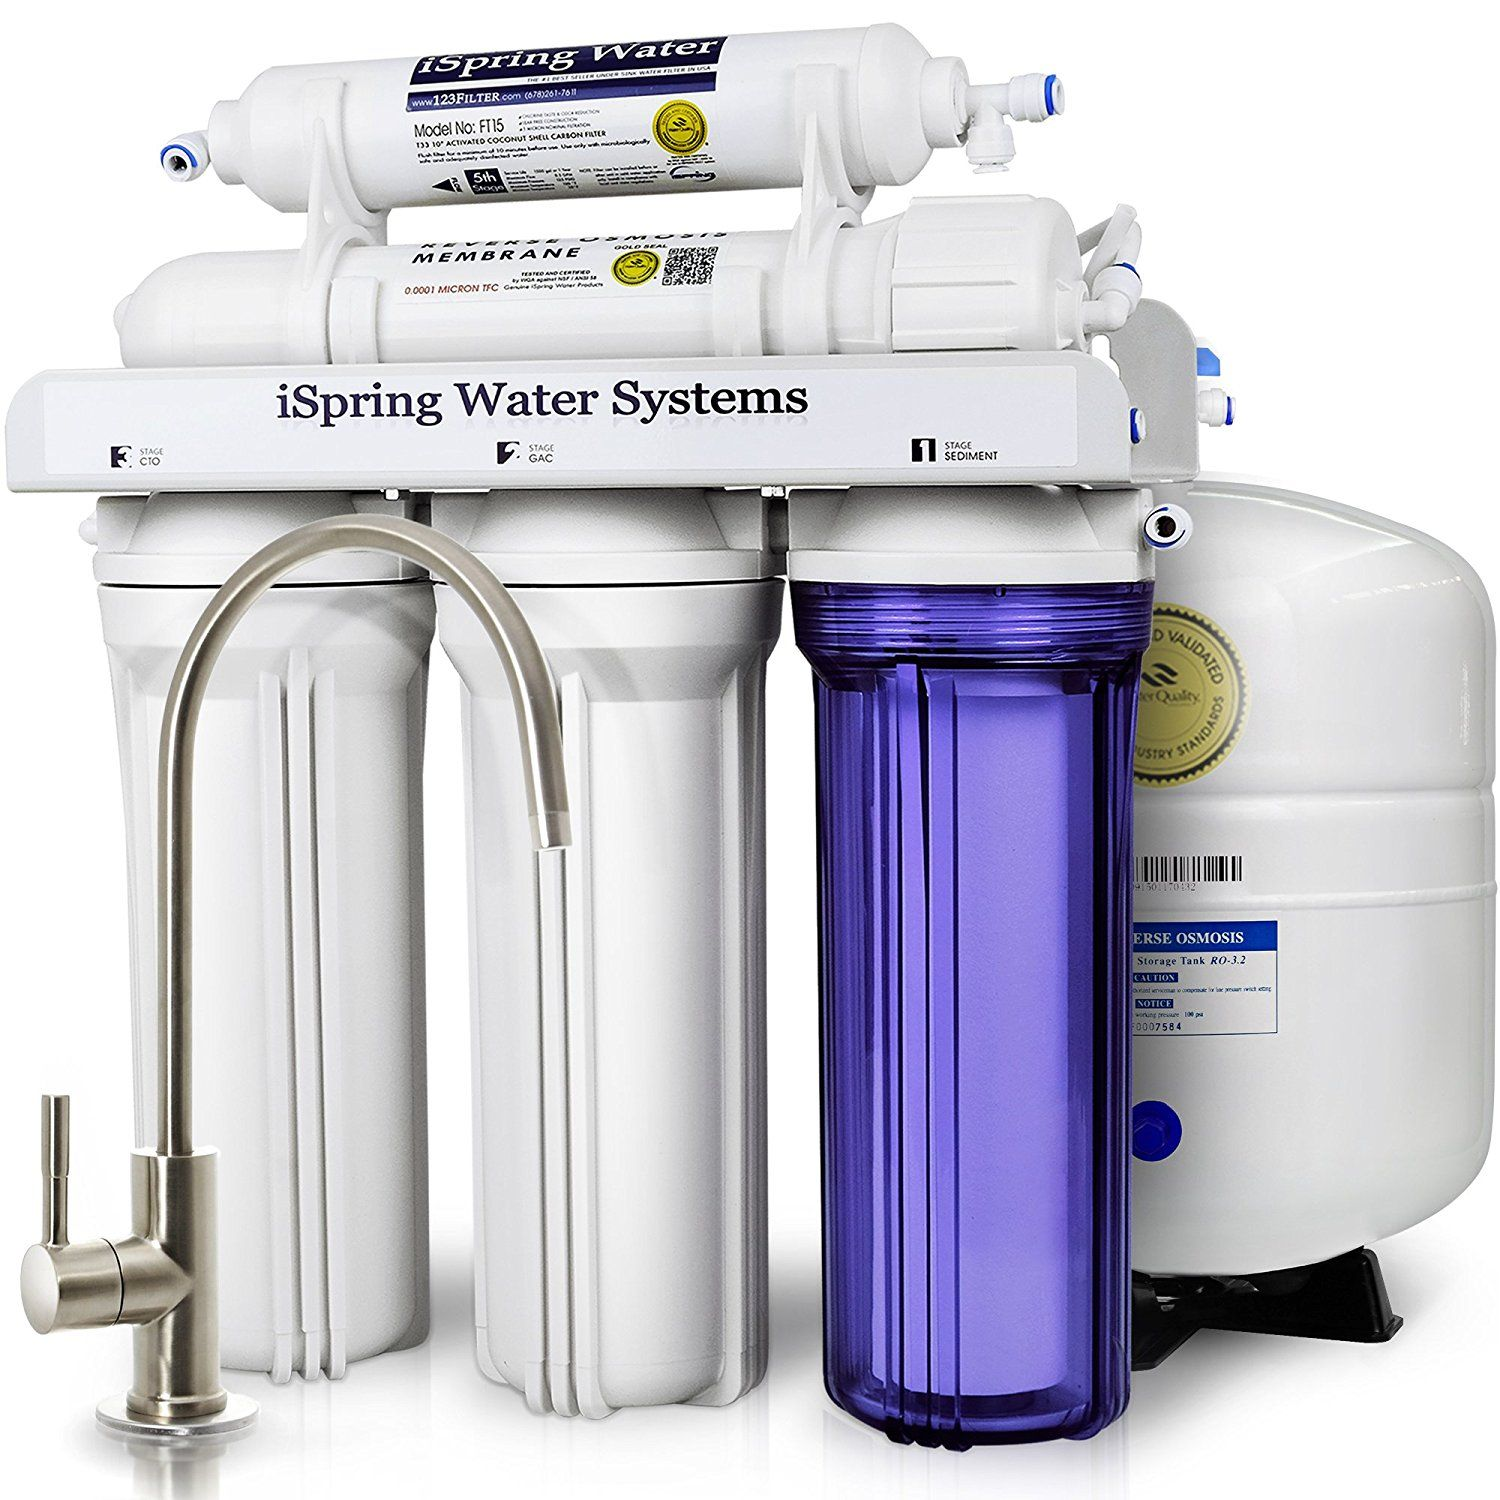 10 Excellent Reverse Osmosis System For Home Reviews